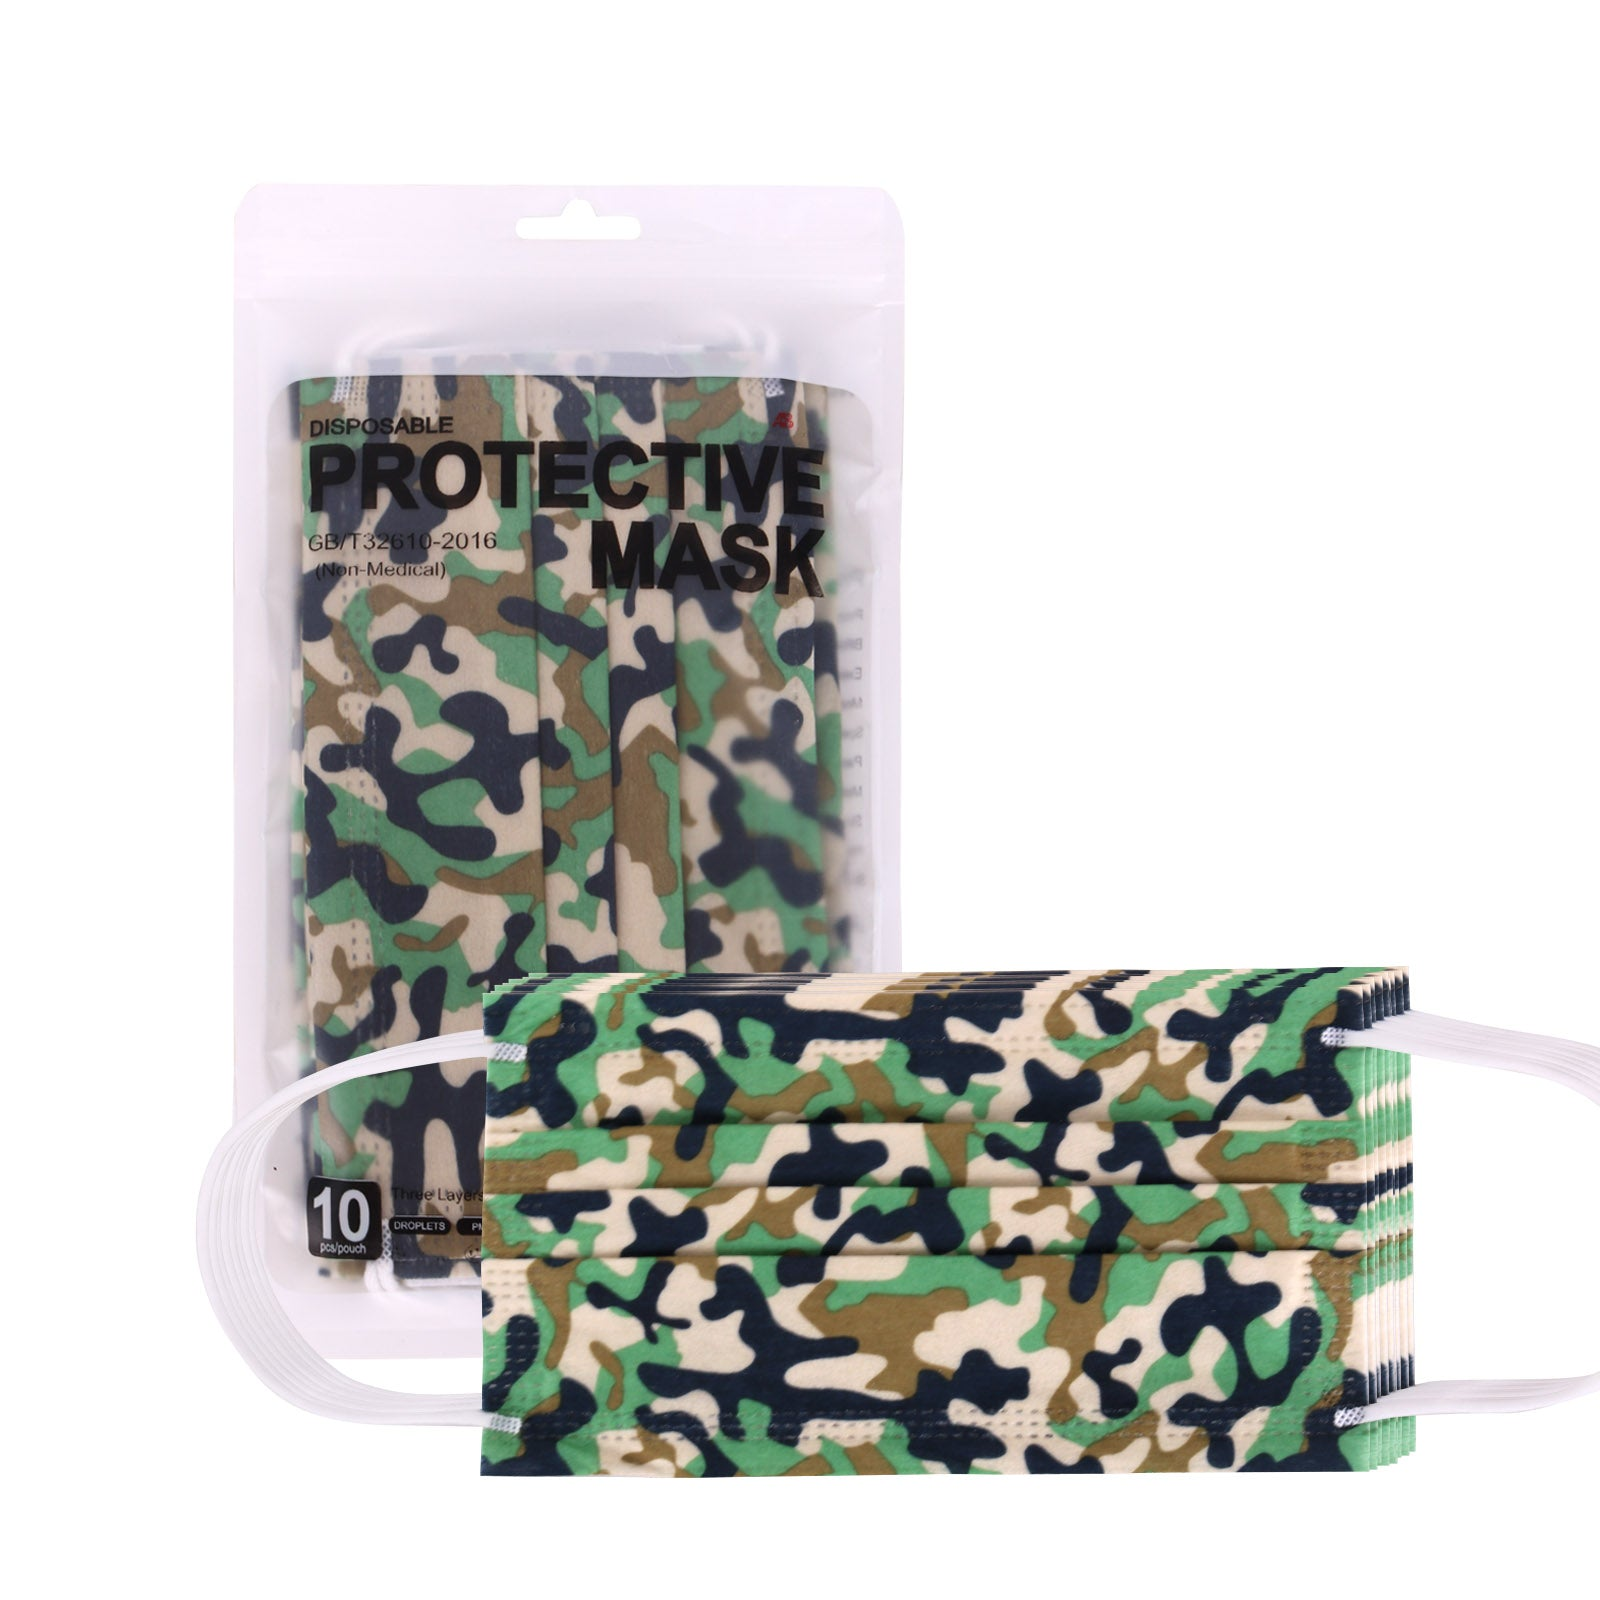 1000Pcs American Bling 10Pcs /Pack Green Camo Print 3Ply Disposable Face Masks